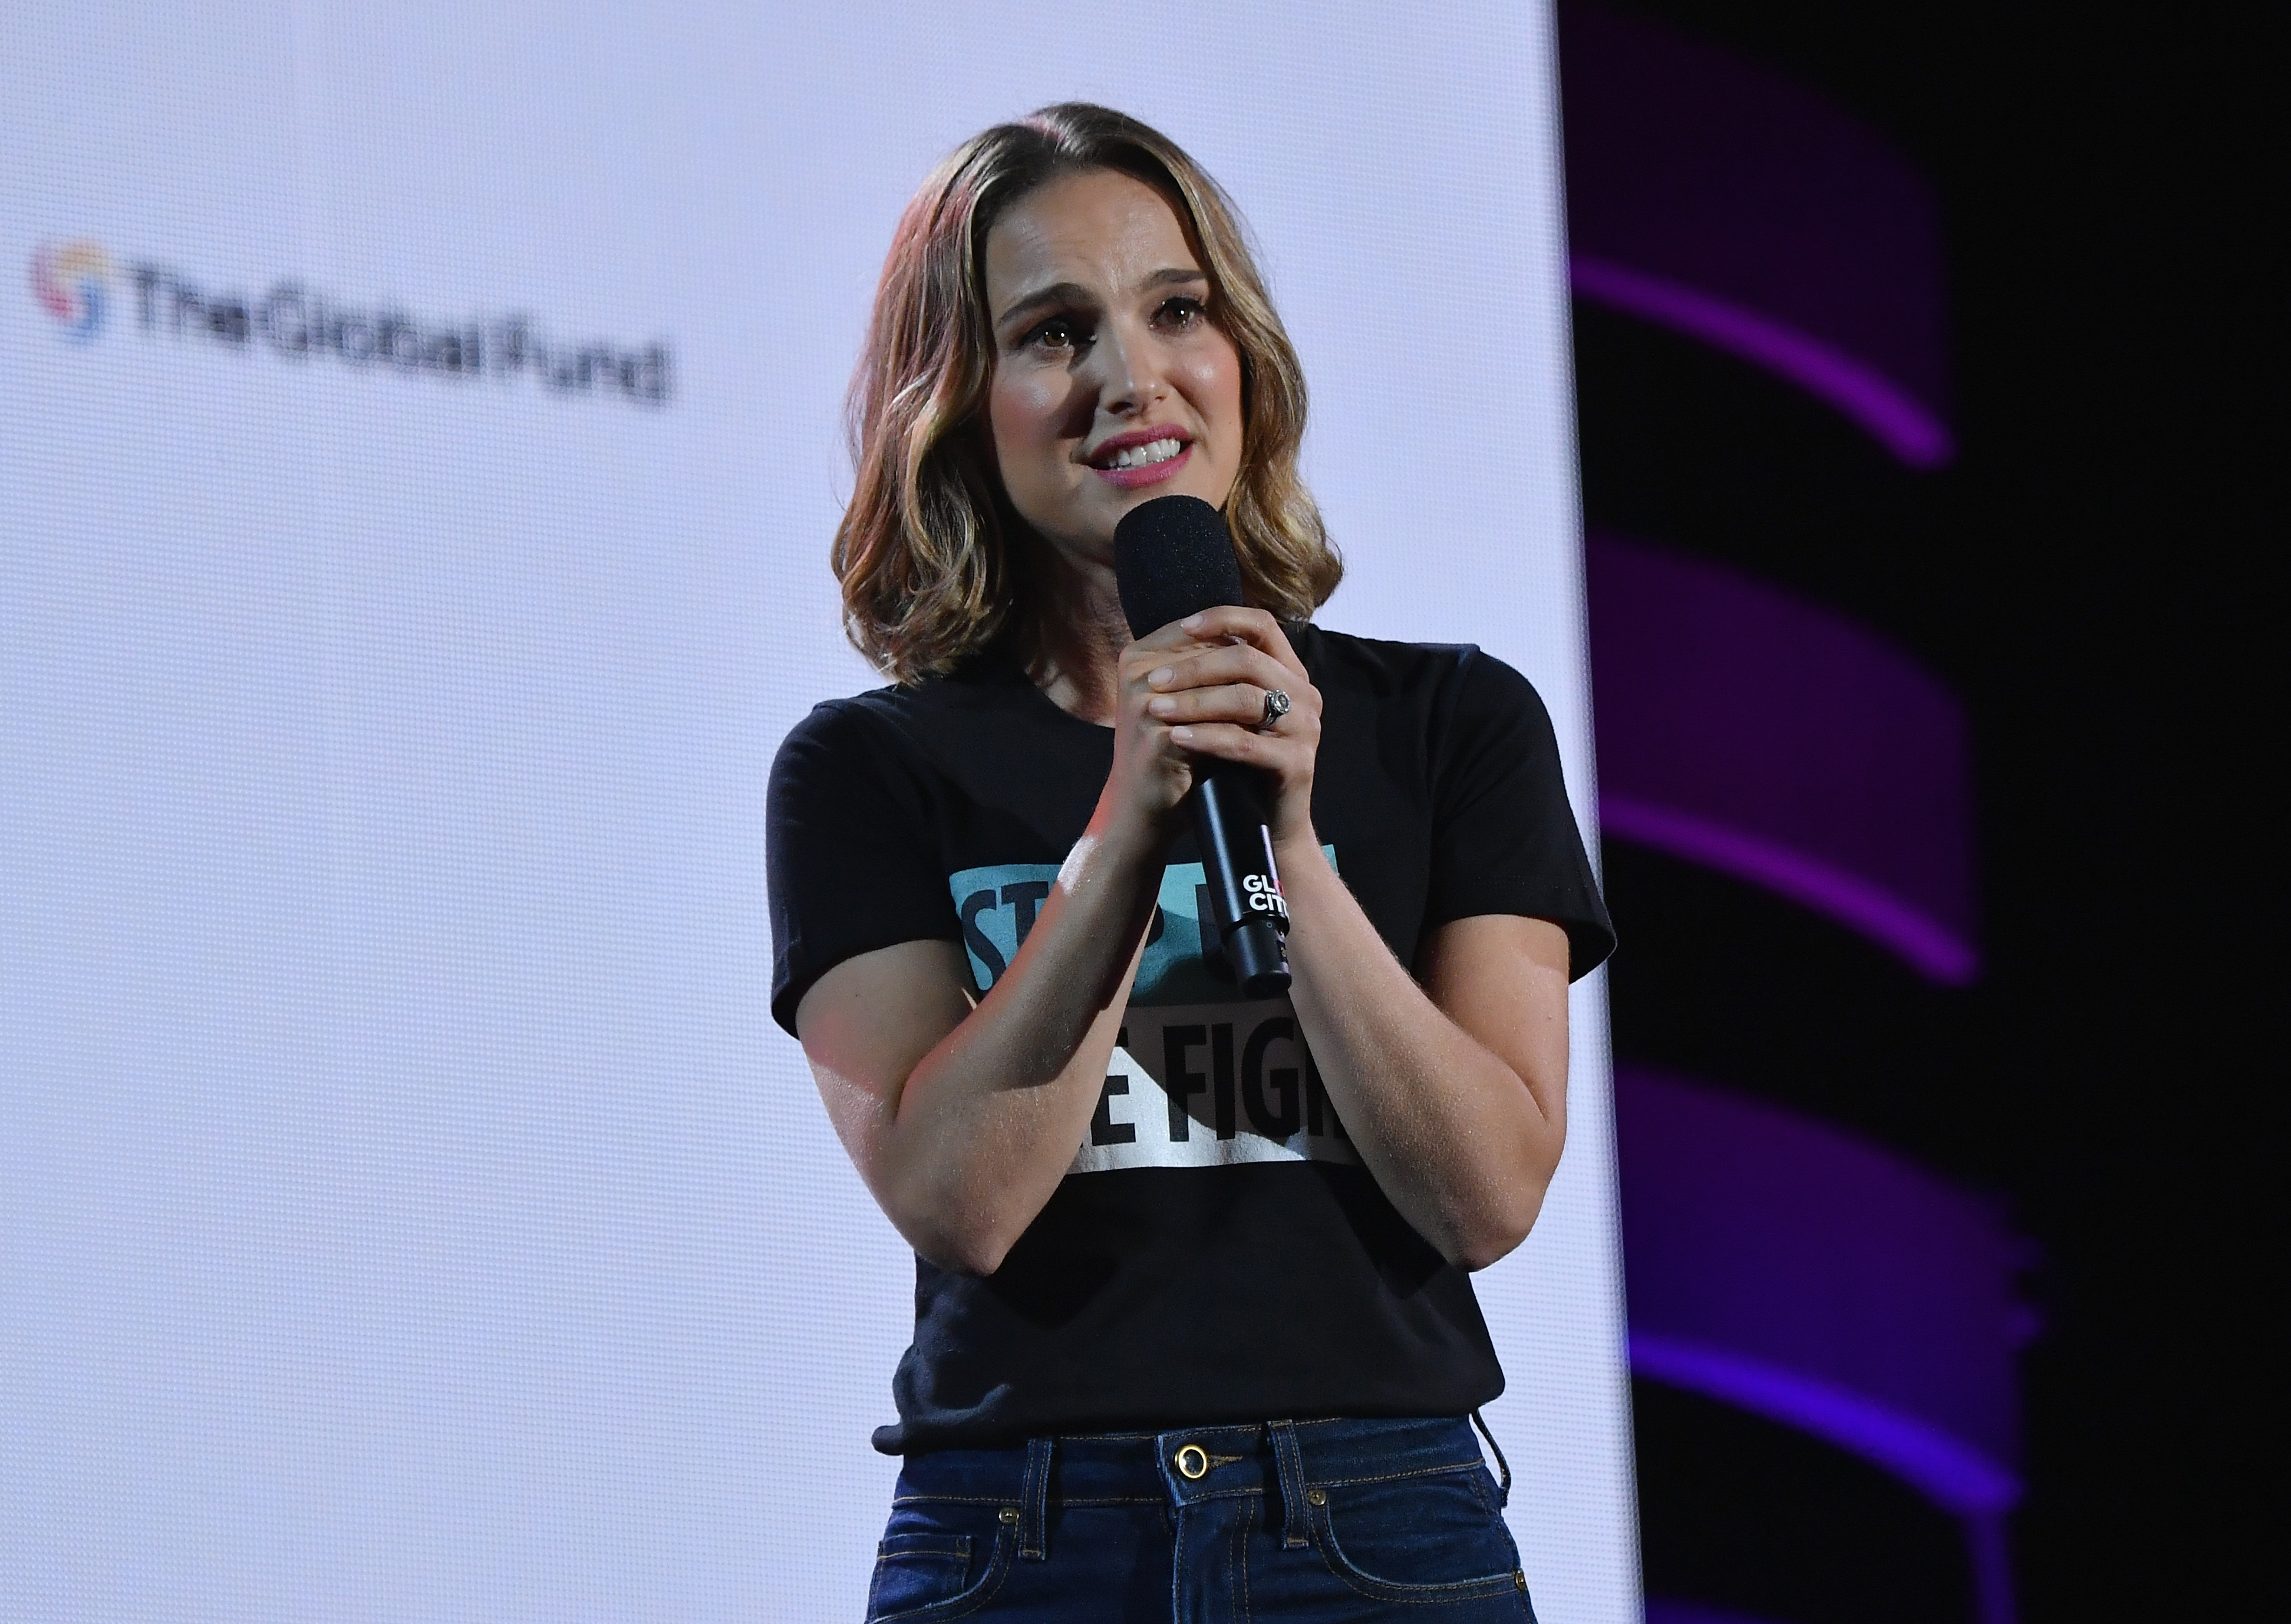 US-Israeli actress Natalie Portman speaks onstage at the 2019 Global Citizen Festival: Power The Movement in Central Park in New York on September 28, 2019. (Photo by Angela Weiss / AFP)        (Photo credit should read ANGELA WEISS/AFP/Getty Images)